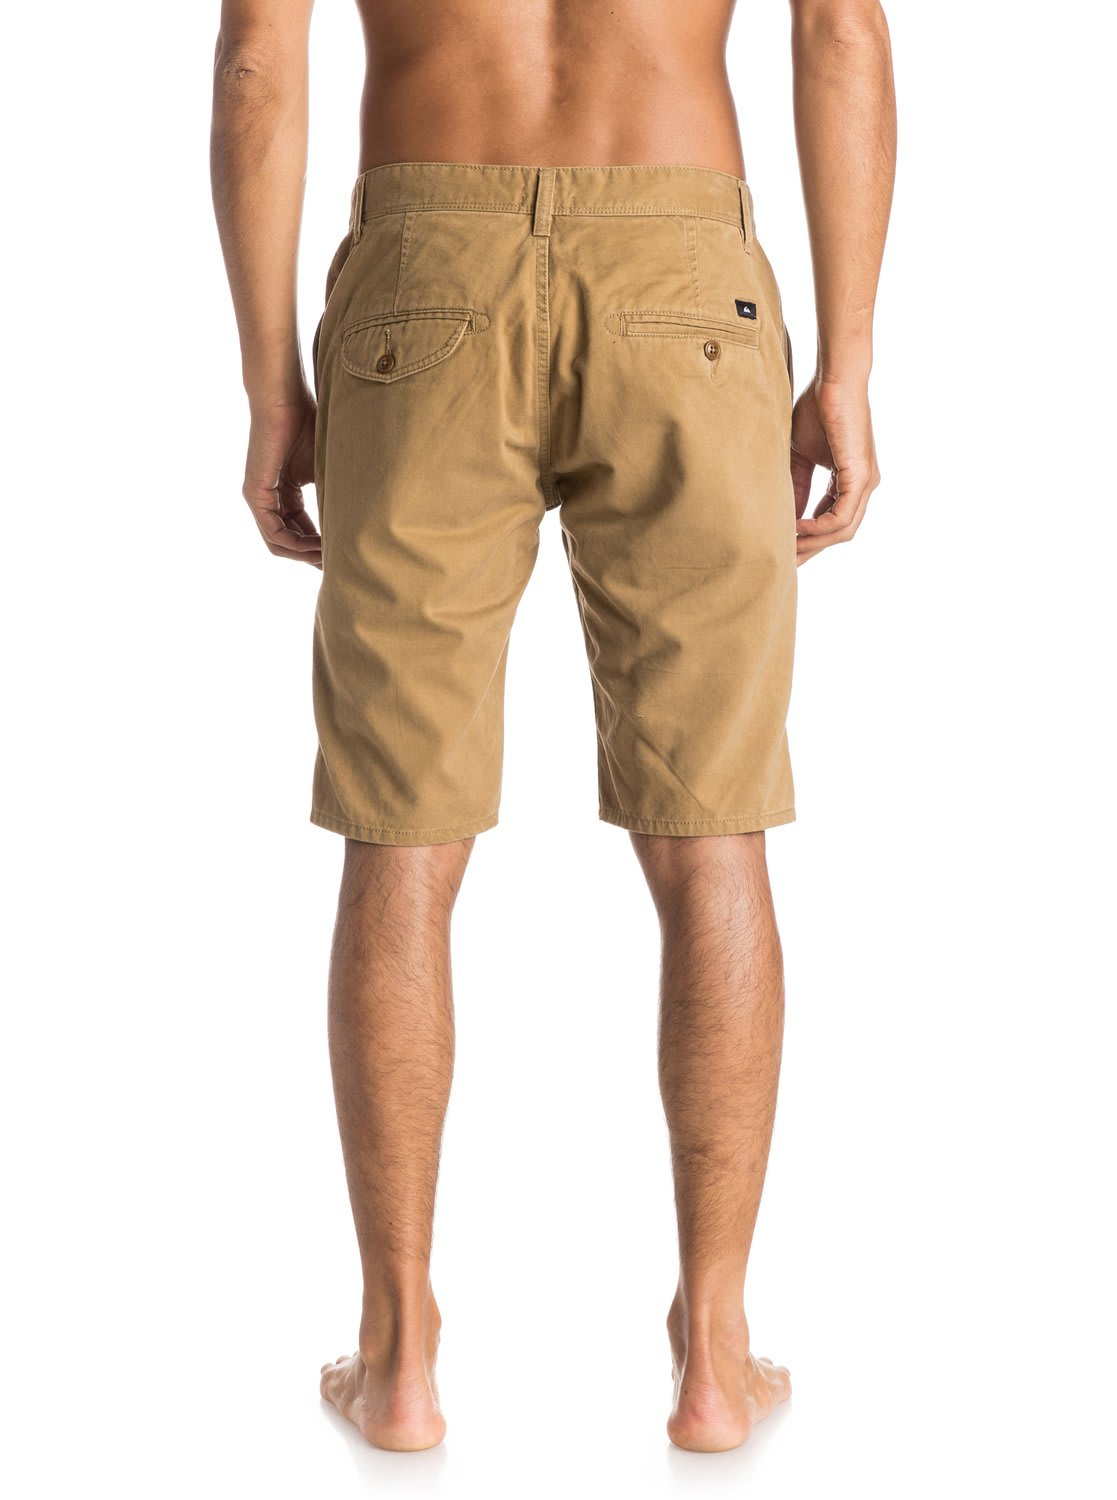 8fe2aed8ad Quiksilver shorts sale. If you want to look like you belong on the beach,  put on your Quiksilver surf gear and your best surfer vibe.